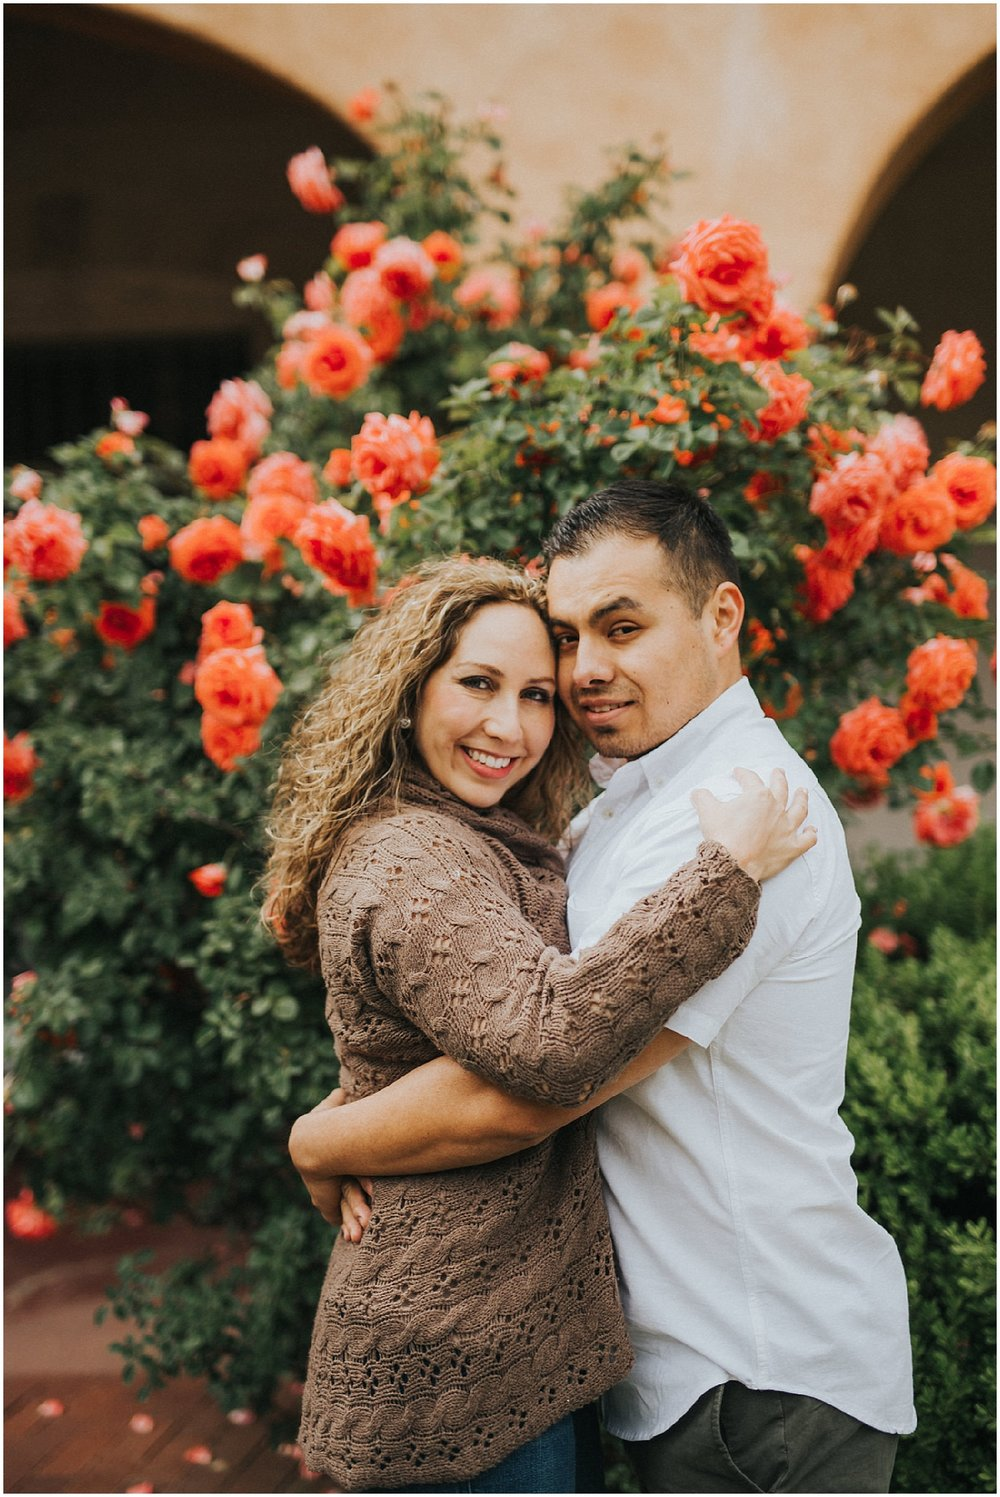 Jacque and Adan traveled from California to New Mexico and I had the honor of capturing some fabulous Albuquerque engagement photos for them while they were here! We explored throughout Old Town Albuquerque on a beautiful spring afternoon. It was true that April showers brings May flowers because the roses were in full bloom which made for some romantic engagement photo inspiration!